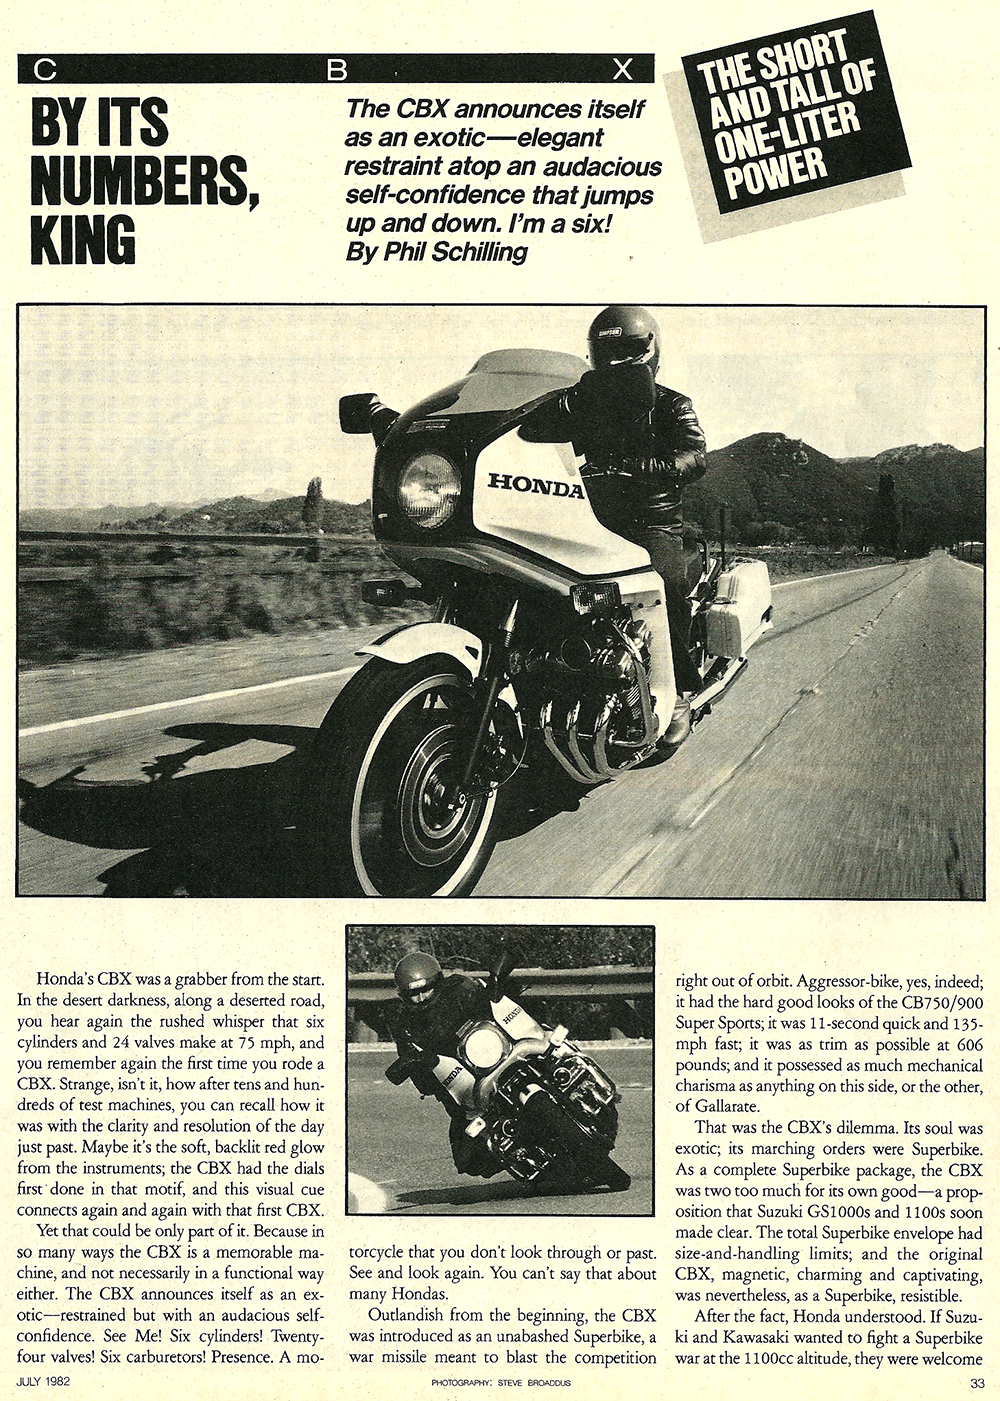 1982 Honda CBX vs CX 500 Turbo road test 03.jpg